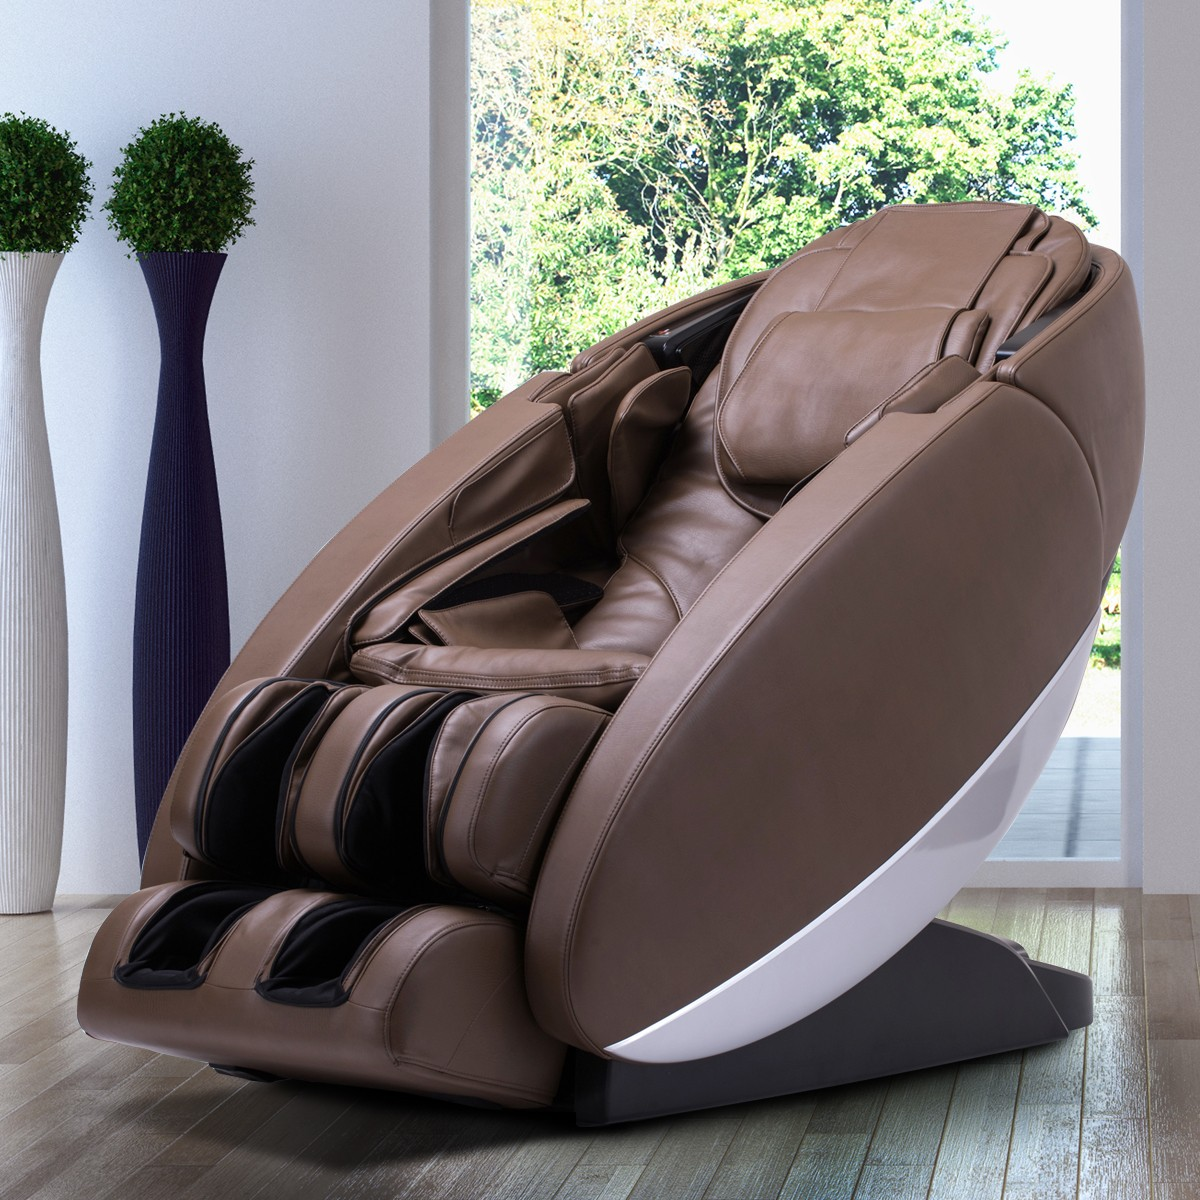 Human Touch To Debut New Ascent Series Massage Chair At The Consumer